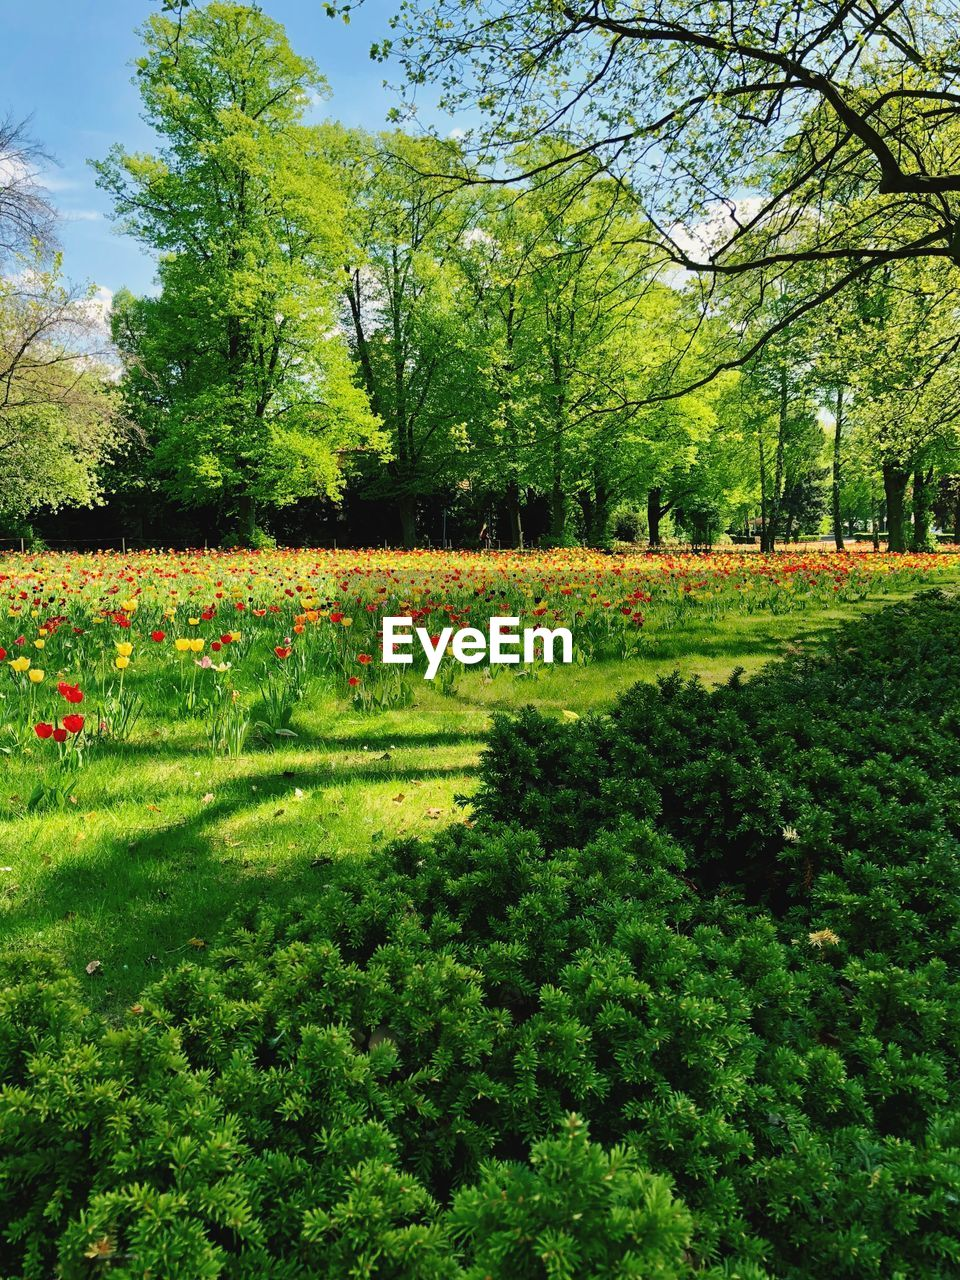 plant, tree, growth, beauty in nature, tranquility, tranquil scene, green color, landscape, grass, flower, nature, environment, day, flowering plant, park, scenics - nature, land, field, no people, park - man made space, outdoors, springtime, flowerbed